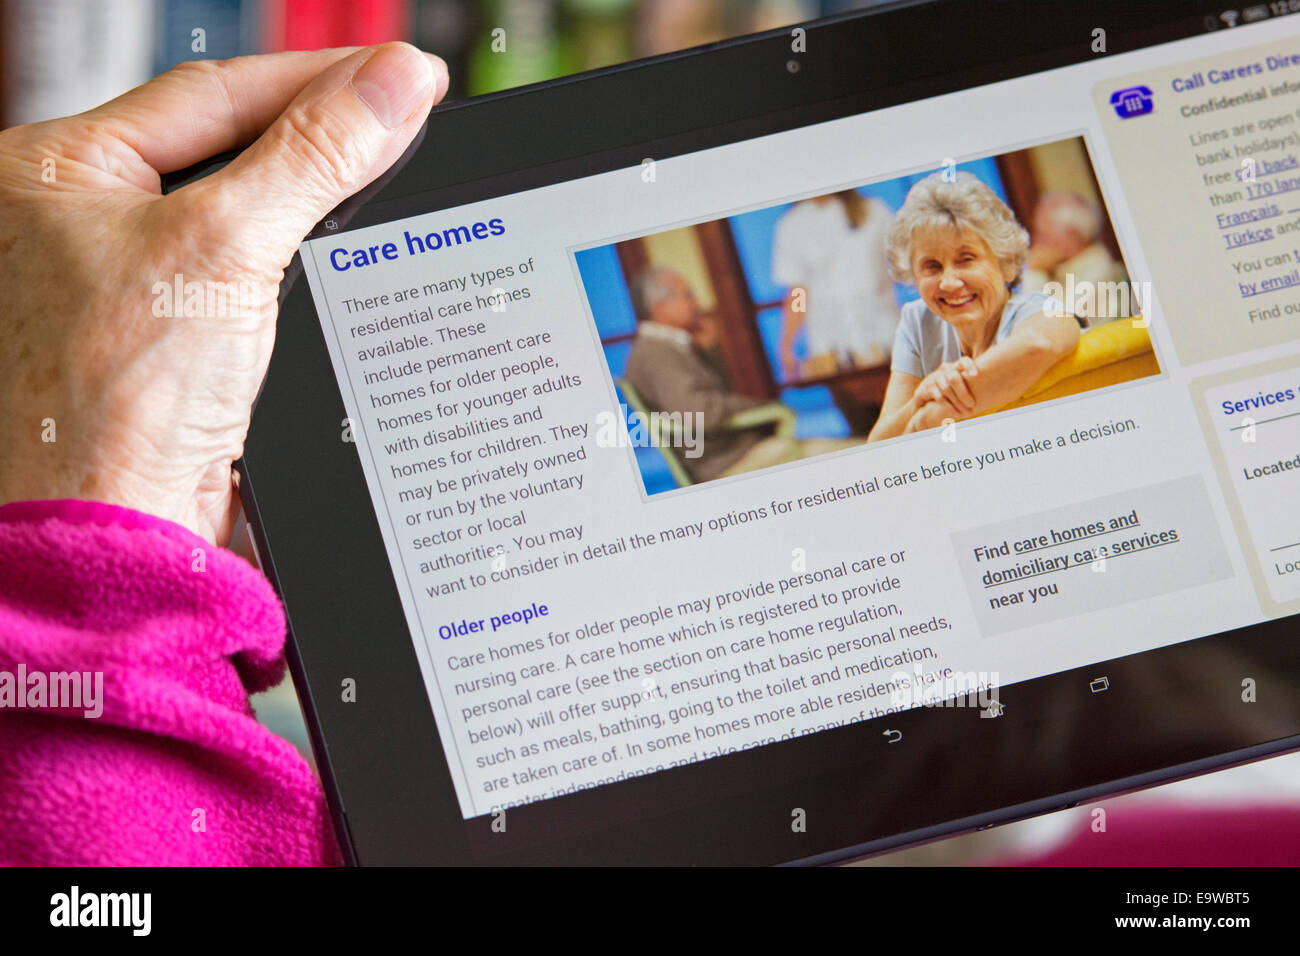 Care Home, Care Services screen on NHS Website, Woman reading Browsing Web Site for Care Homes - Stock Image